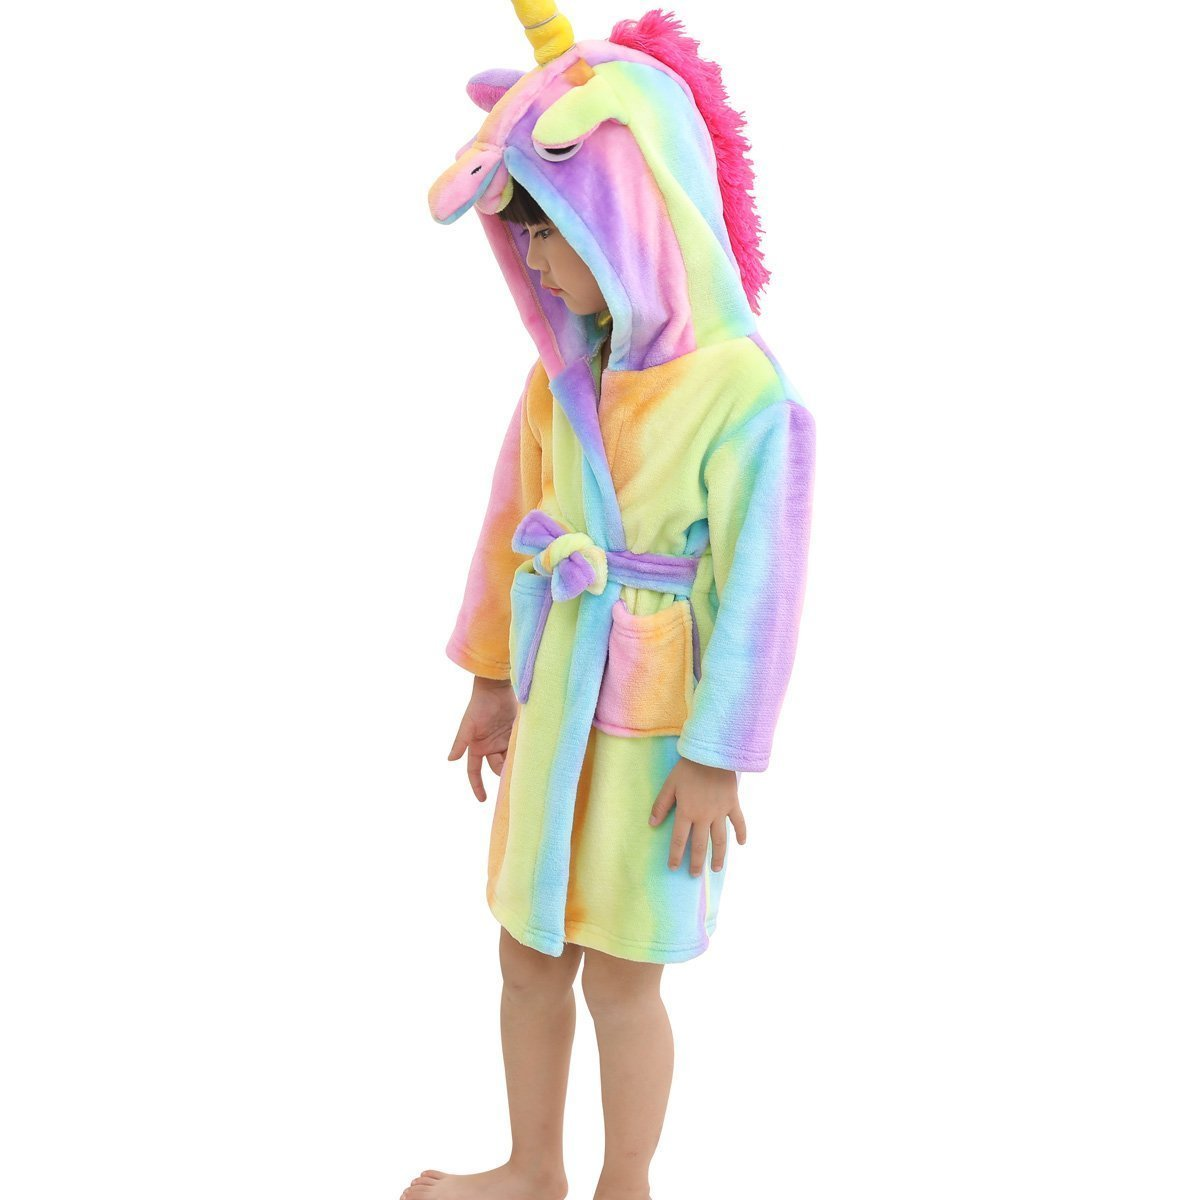 db90dae99f Amazon.com  LANTOP Kids Soft Bathrobe Comfy Unicorn Flannel Robe Unisex  Hooded Gift All Seasons Sleepwear  Clothing